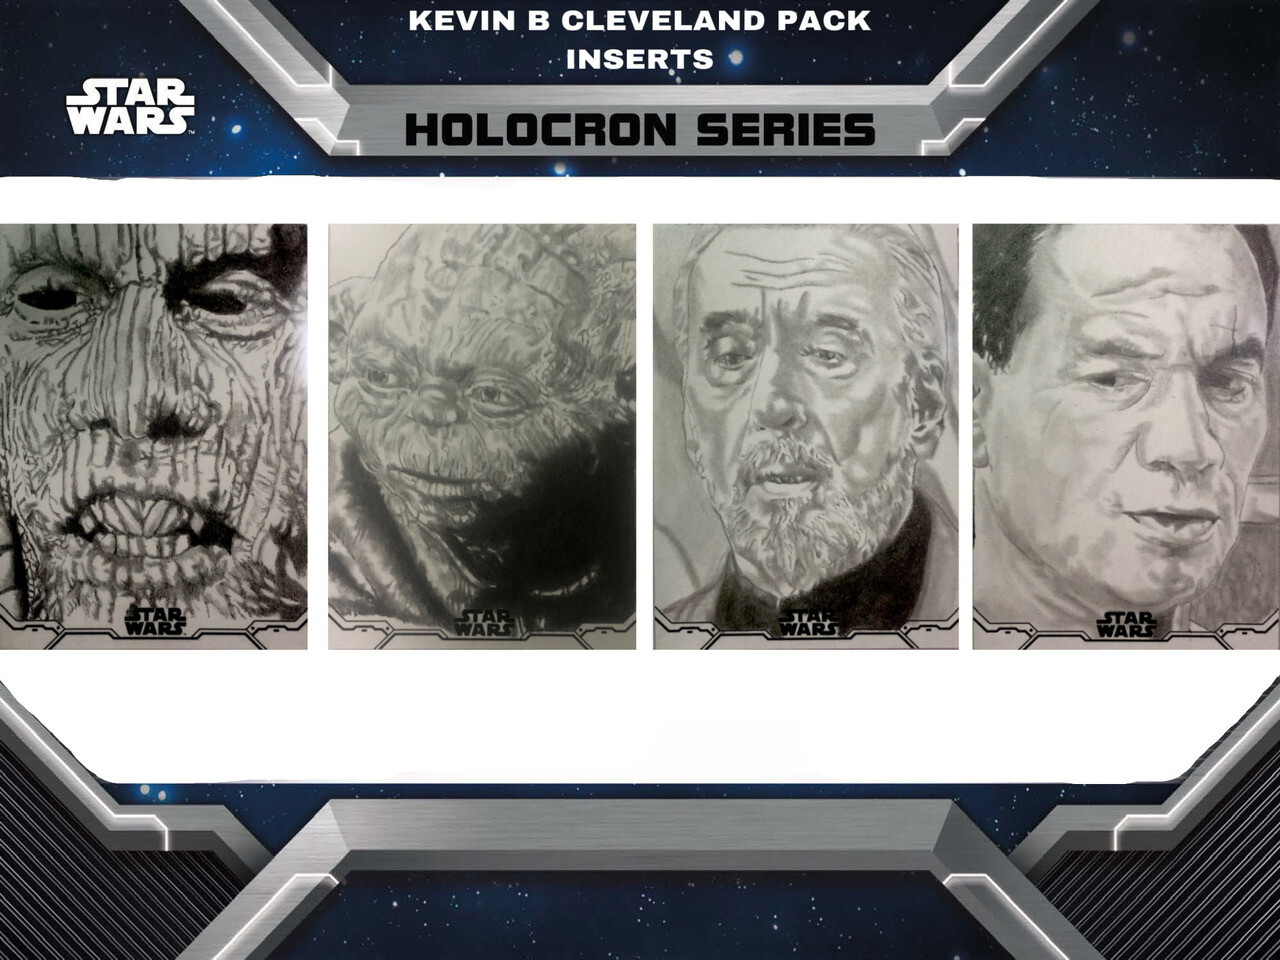 Topps Star Wars Holocron pack inserted sketch cards